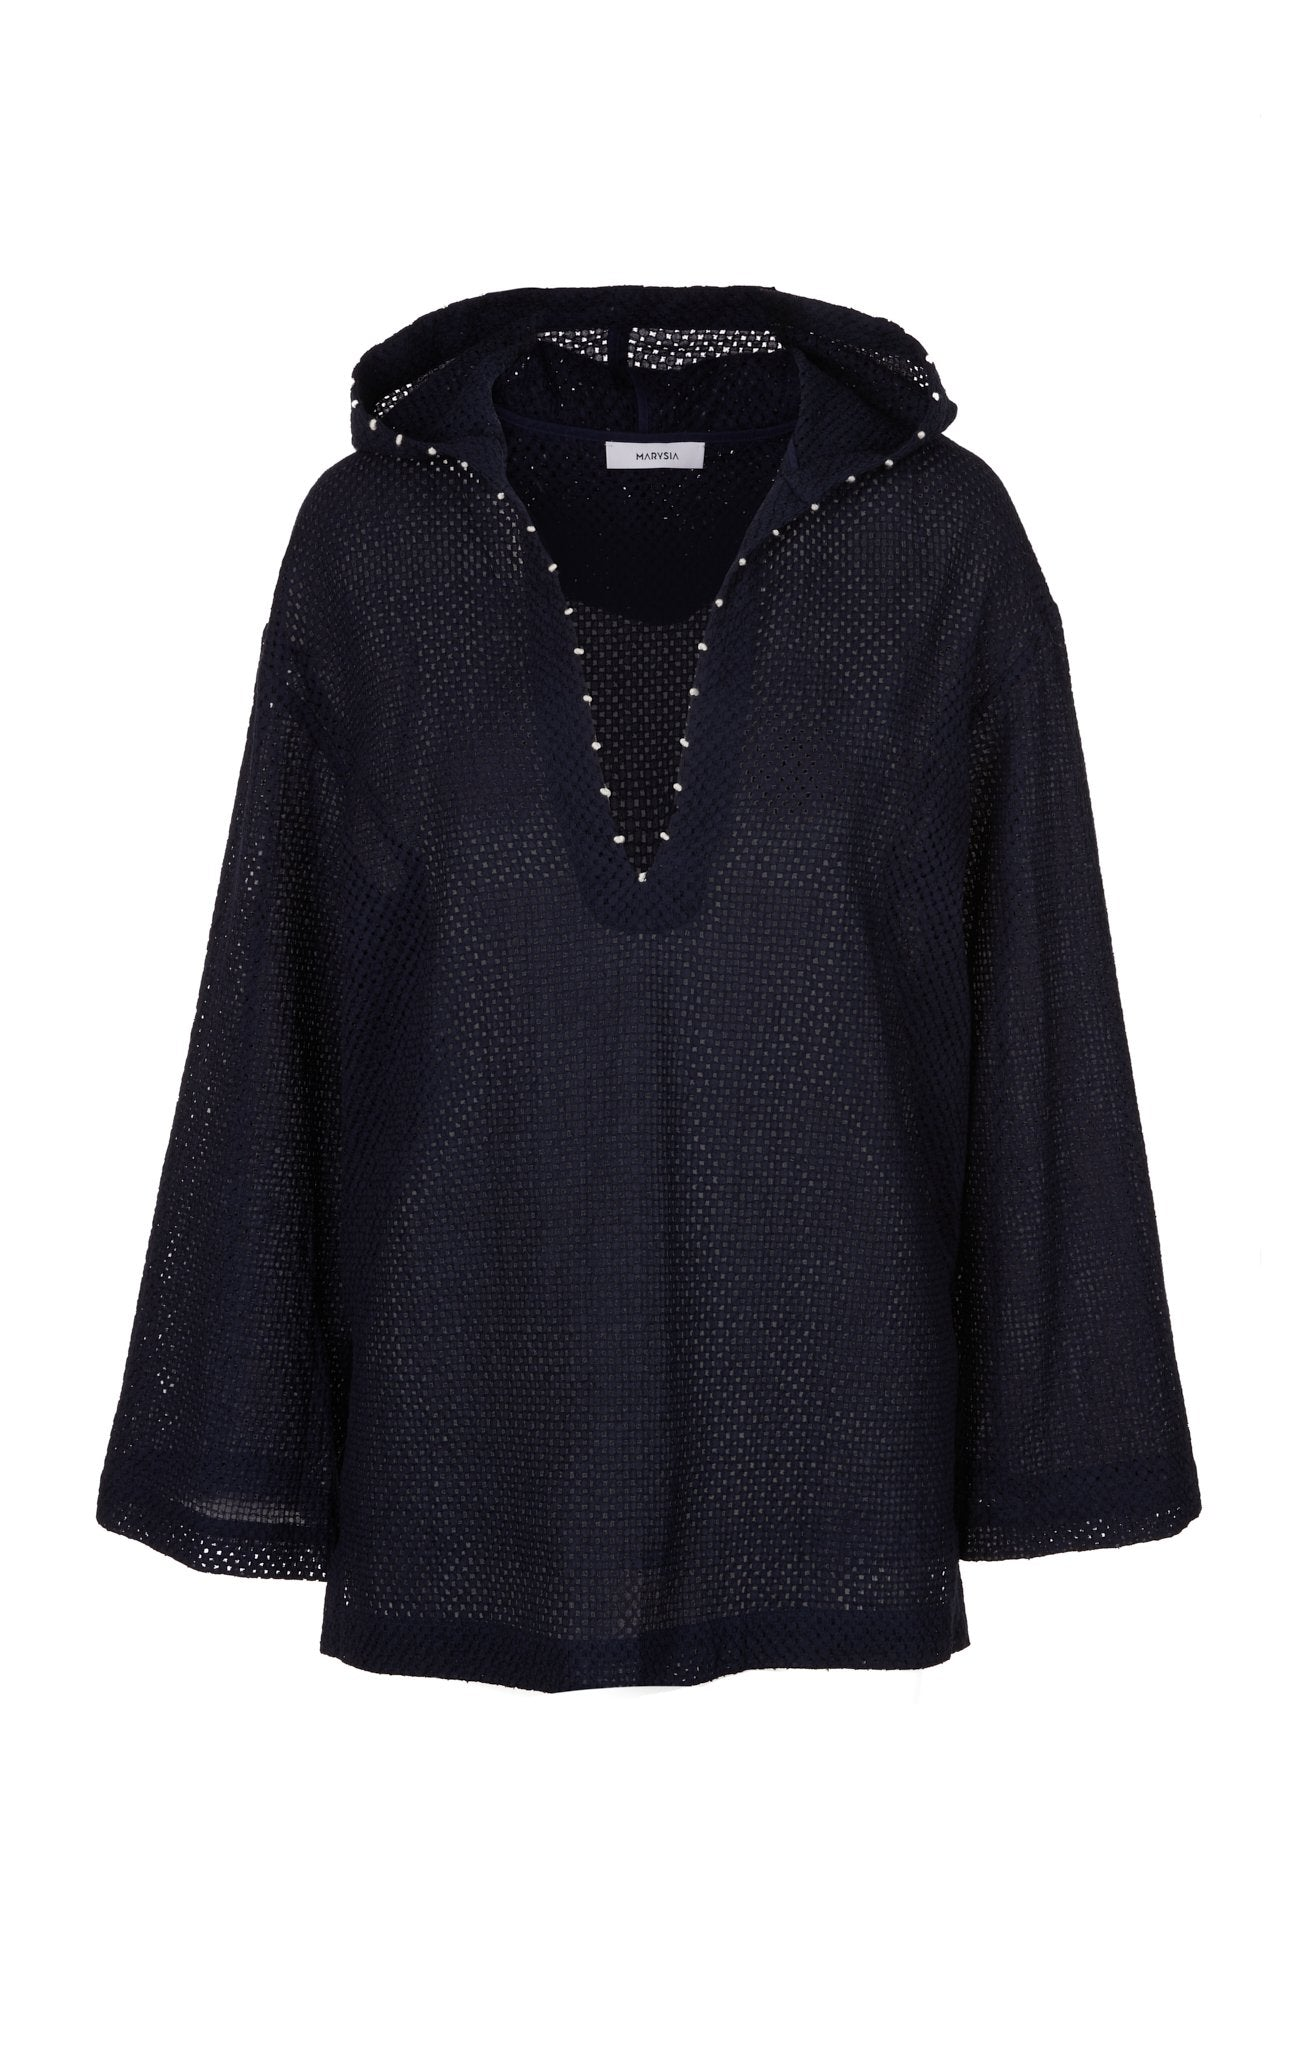 Hooded Tunic in Indigo/Coconut